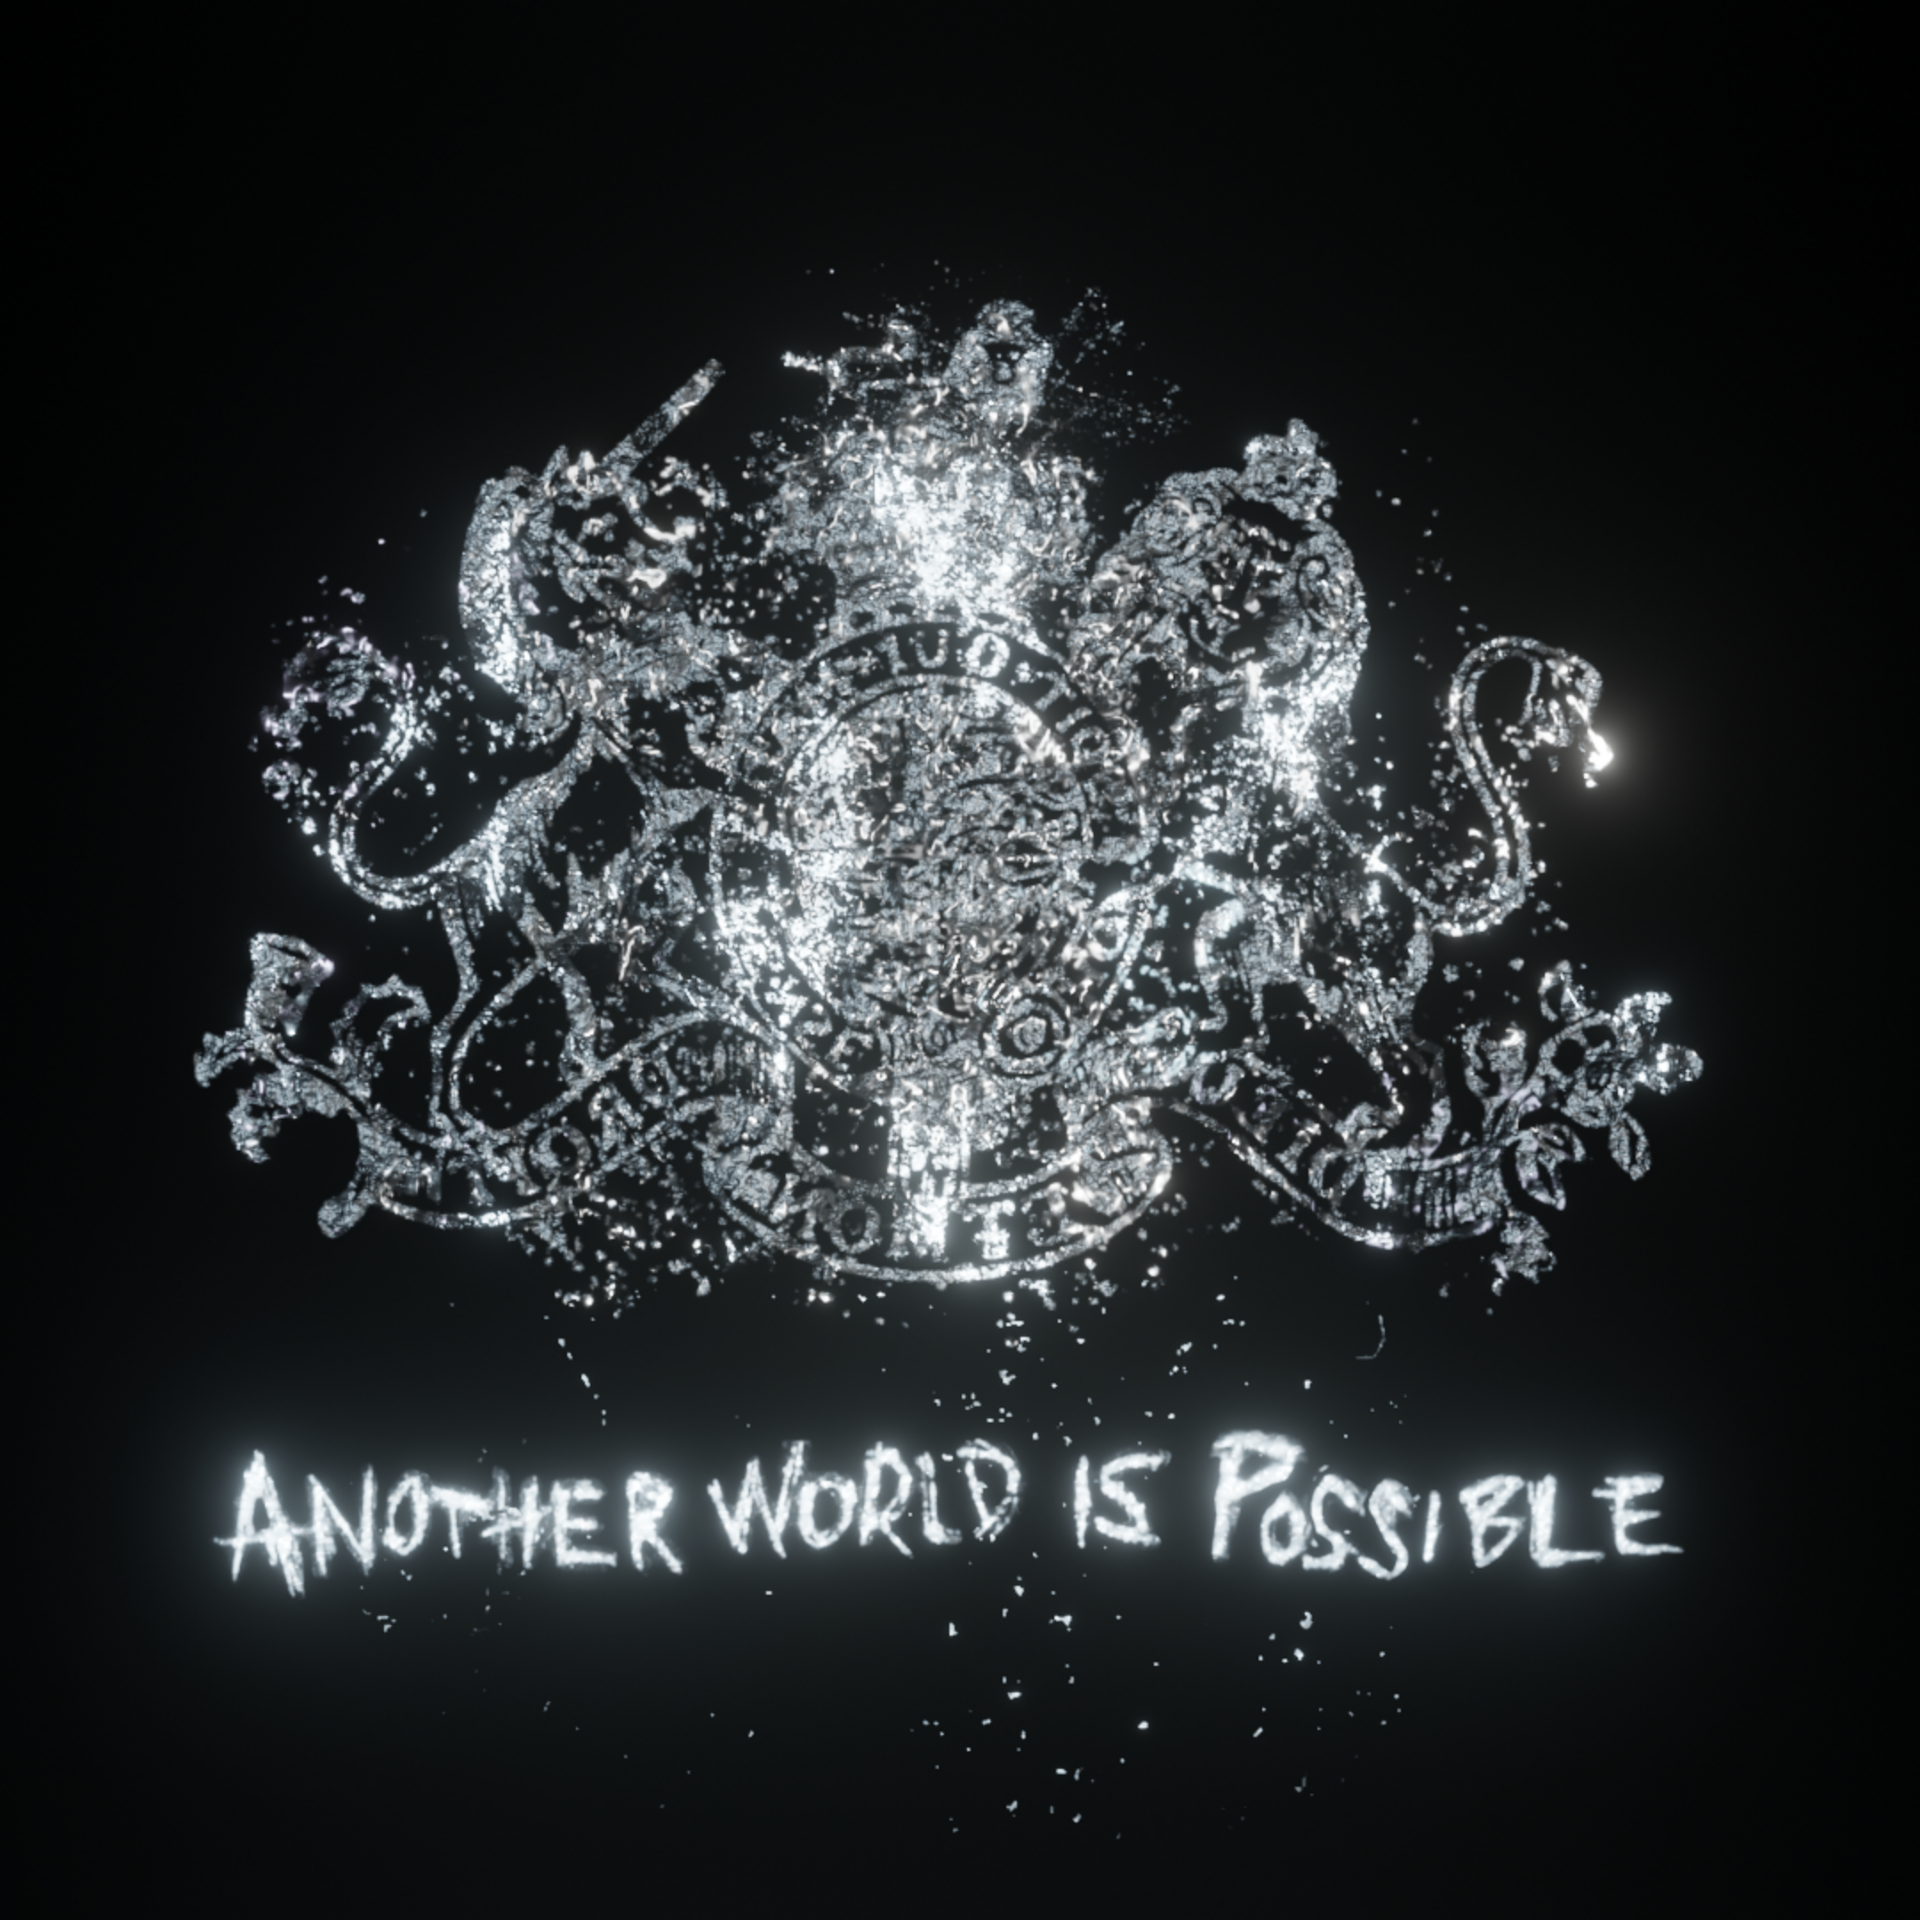 Exhibition: Another World is Possible